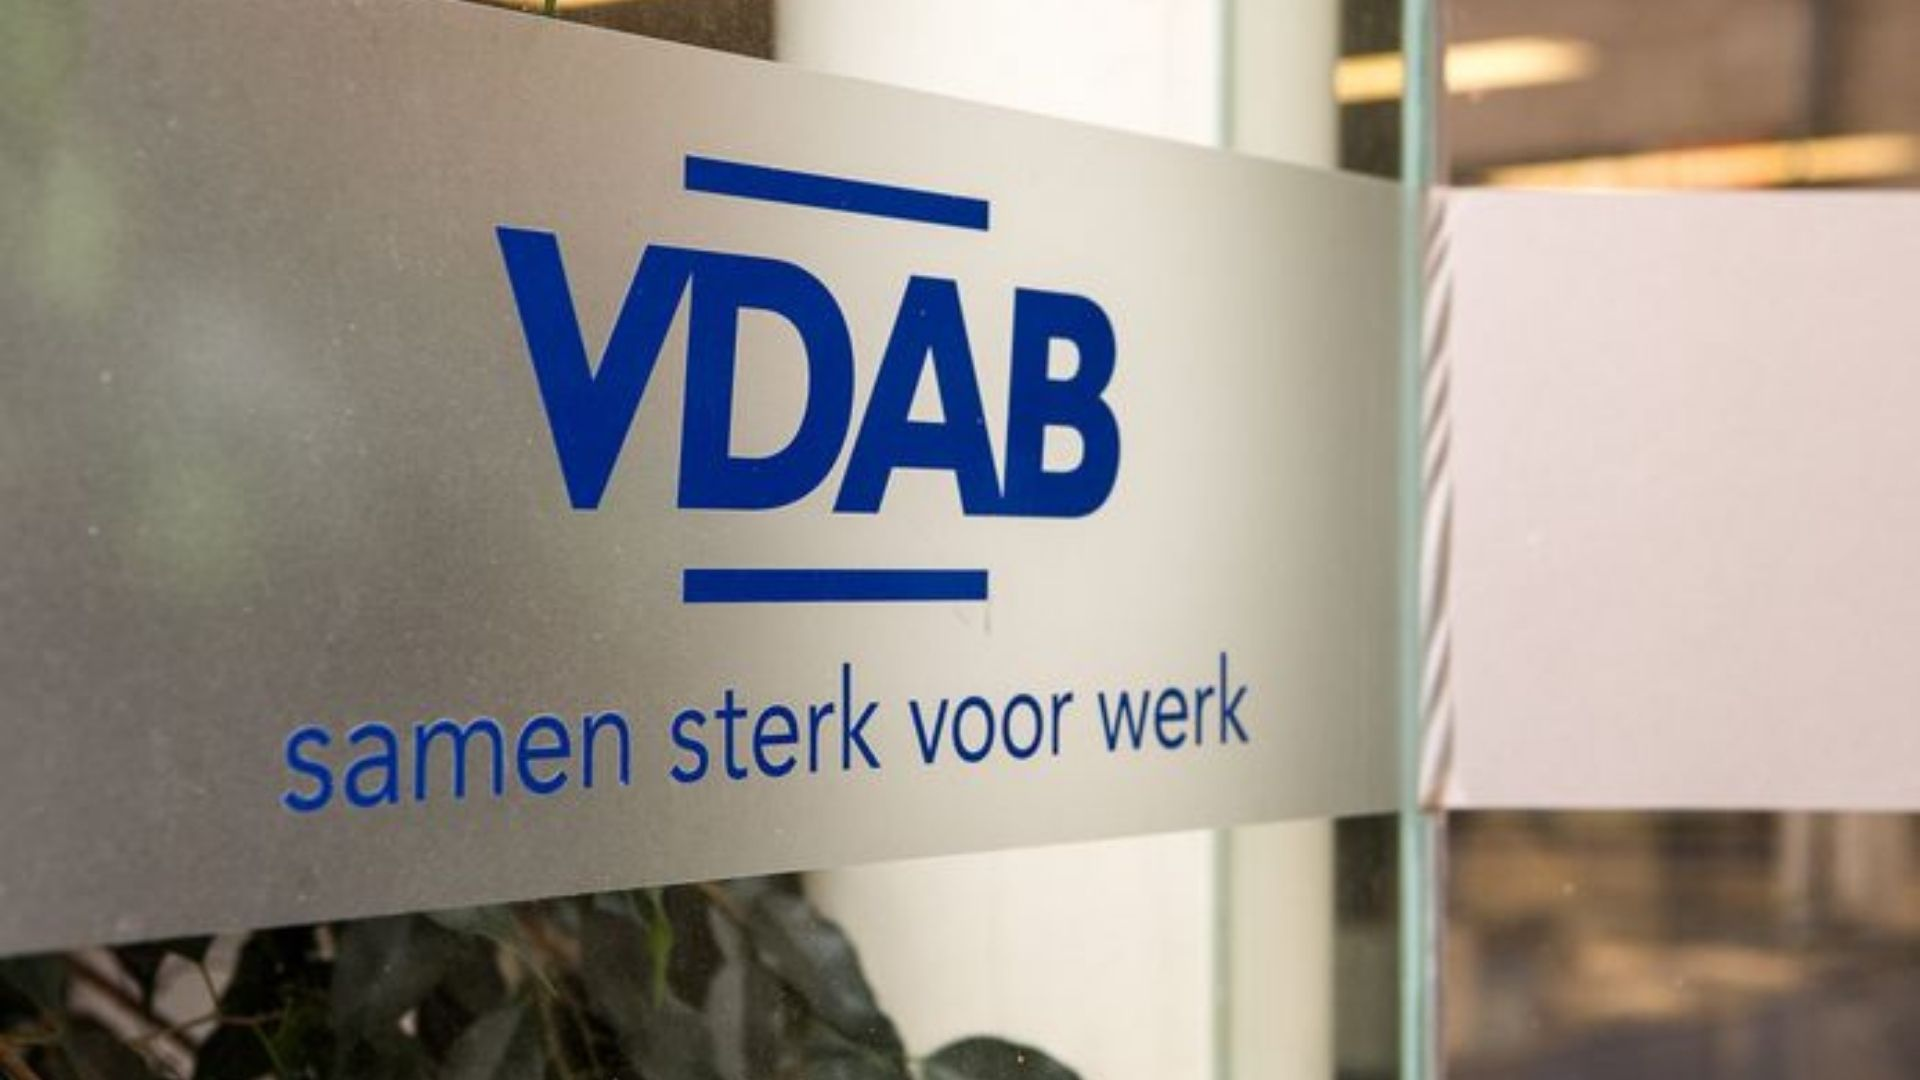 Press Release: VDAB Partners Up with Yields.io